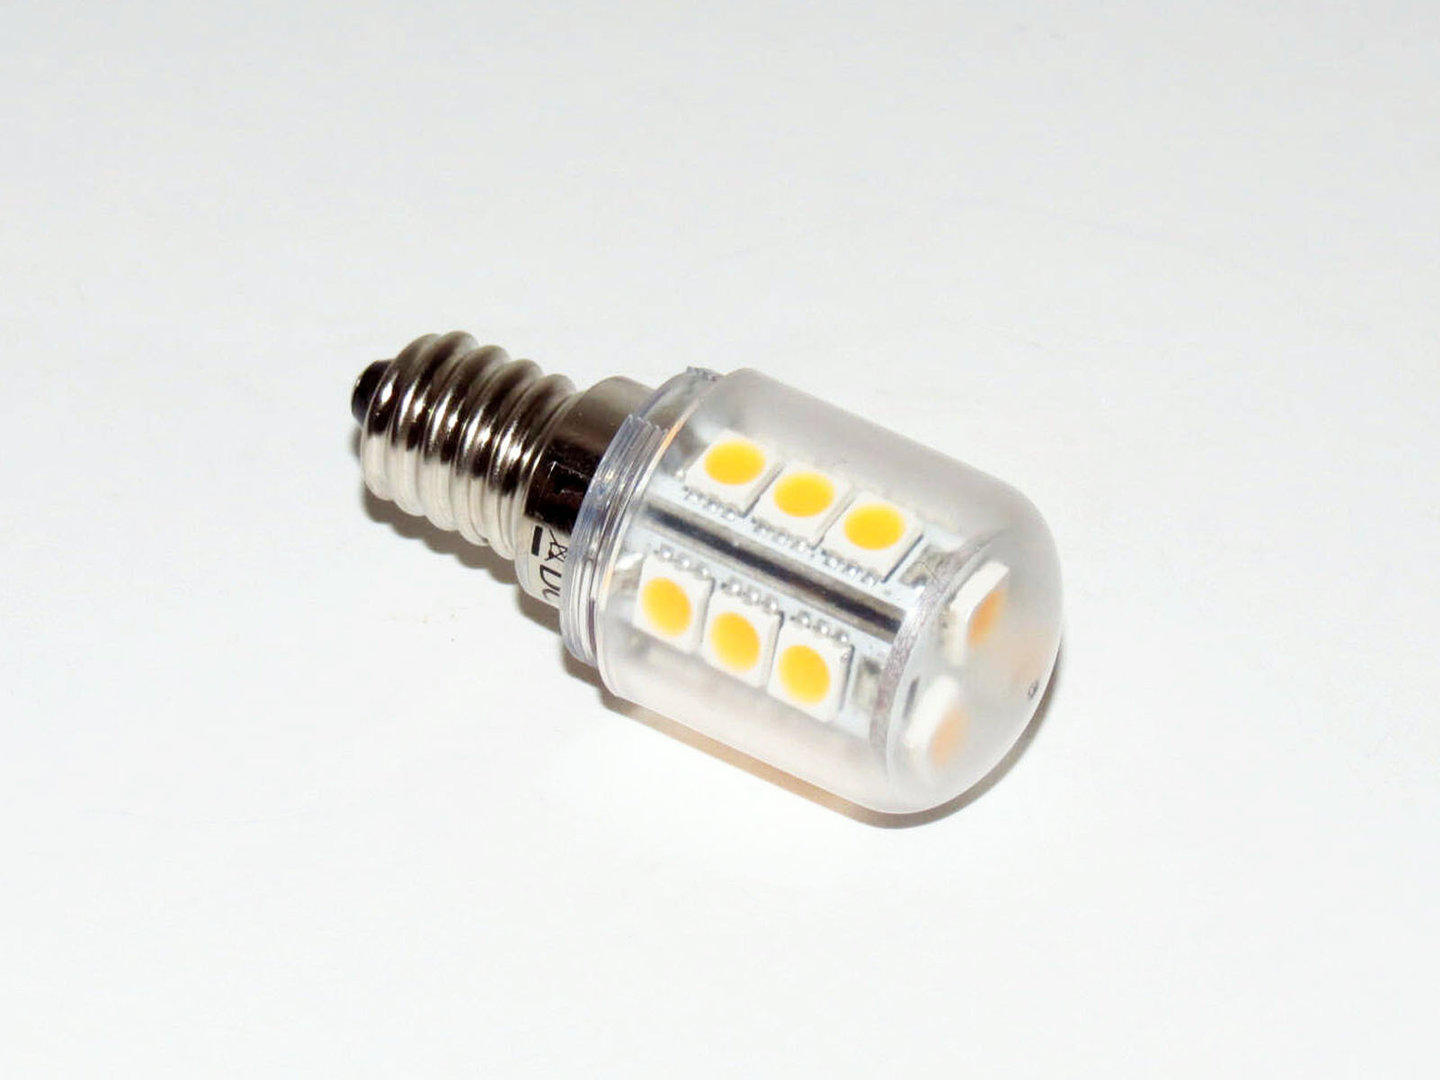 E14 18 LED SMD 10-30V warmweiß